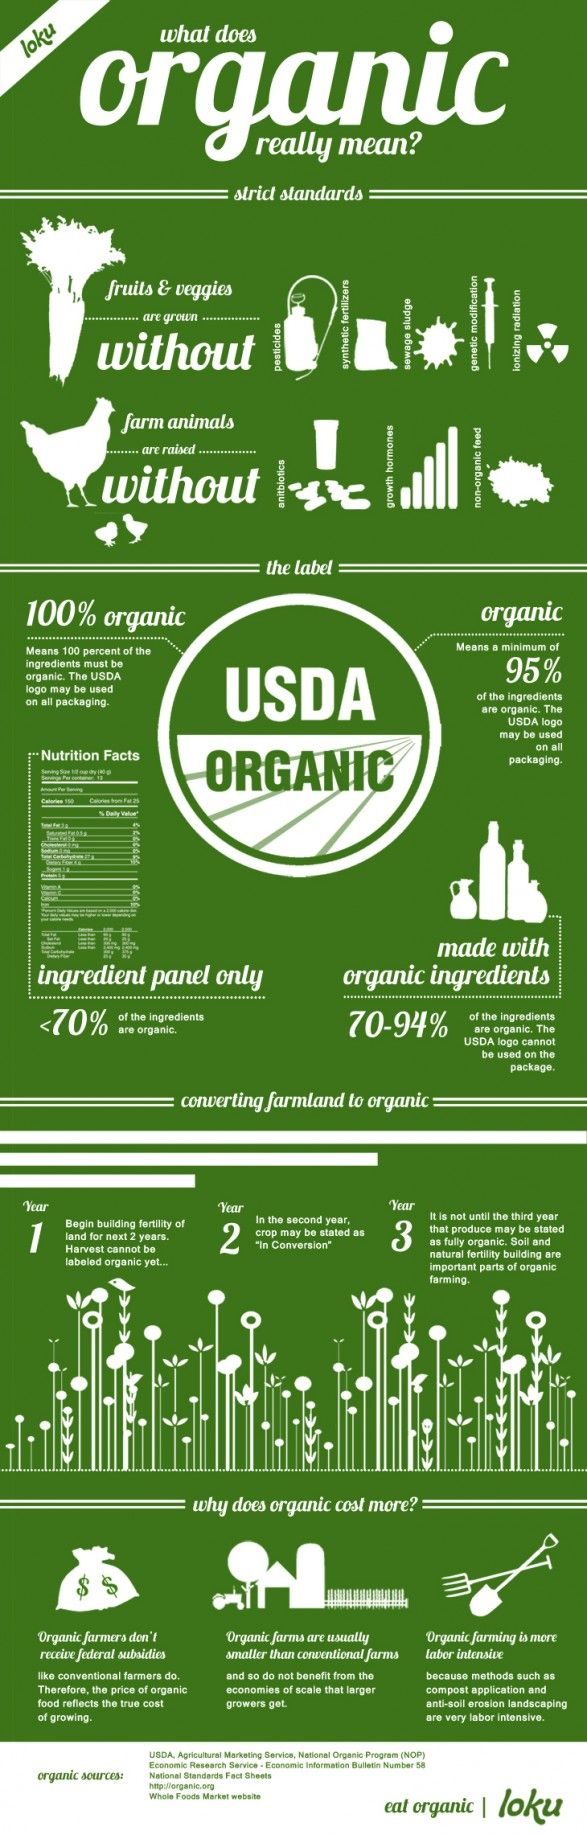 Great #infographic on the meaning of '#Organic' shared by our friends at @applegatefarms  .client